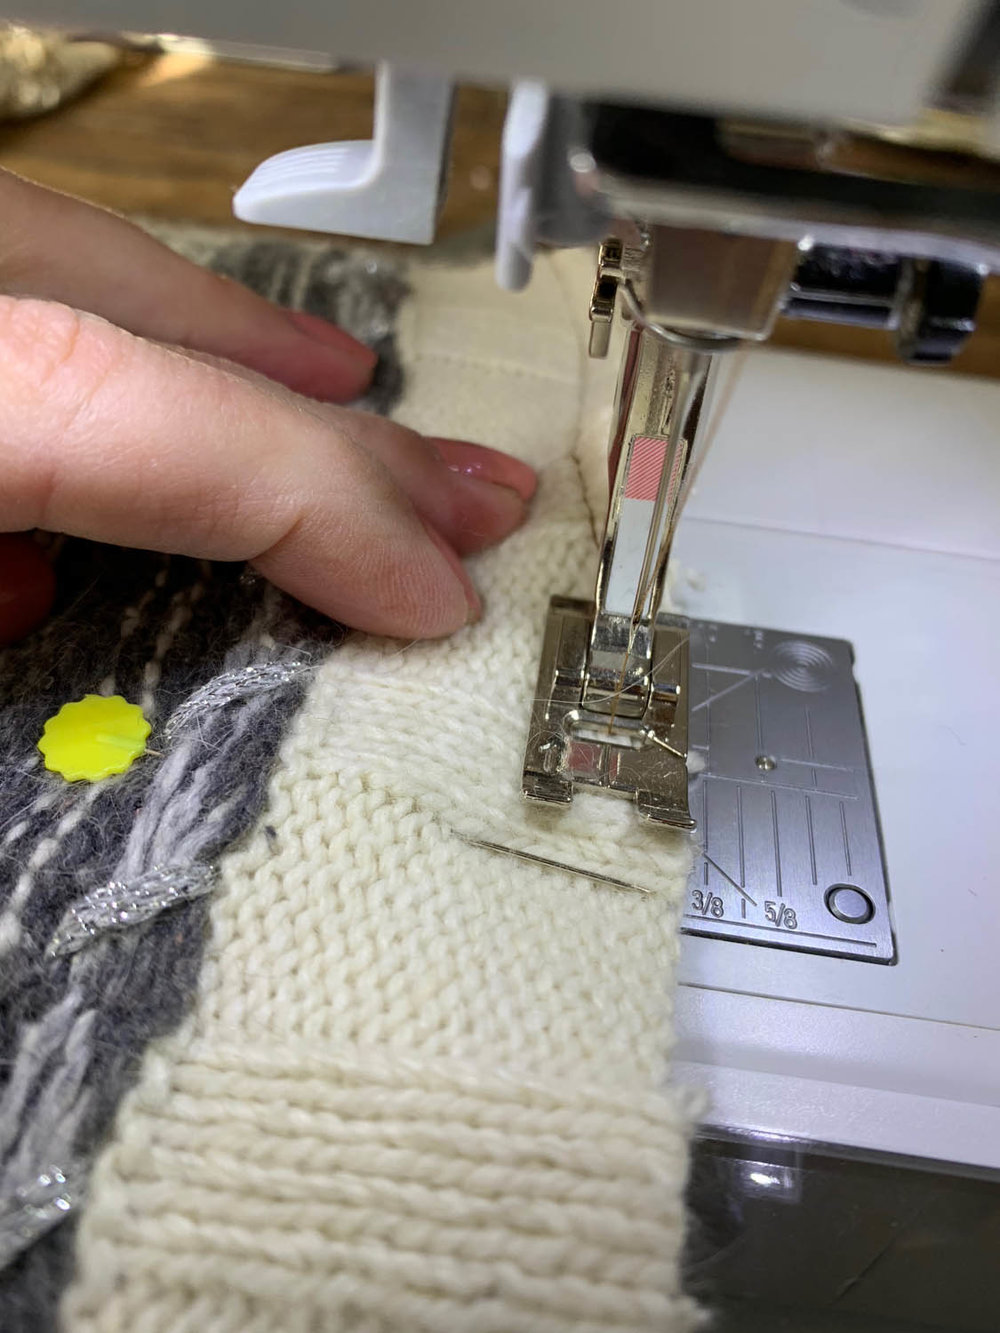 using sewing machine to stitch sweater pieces together for pillow